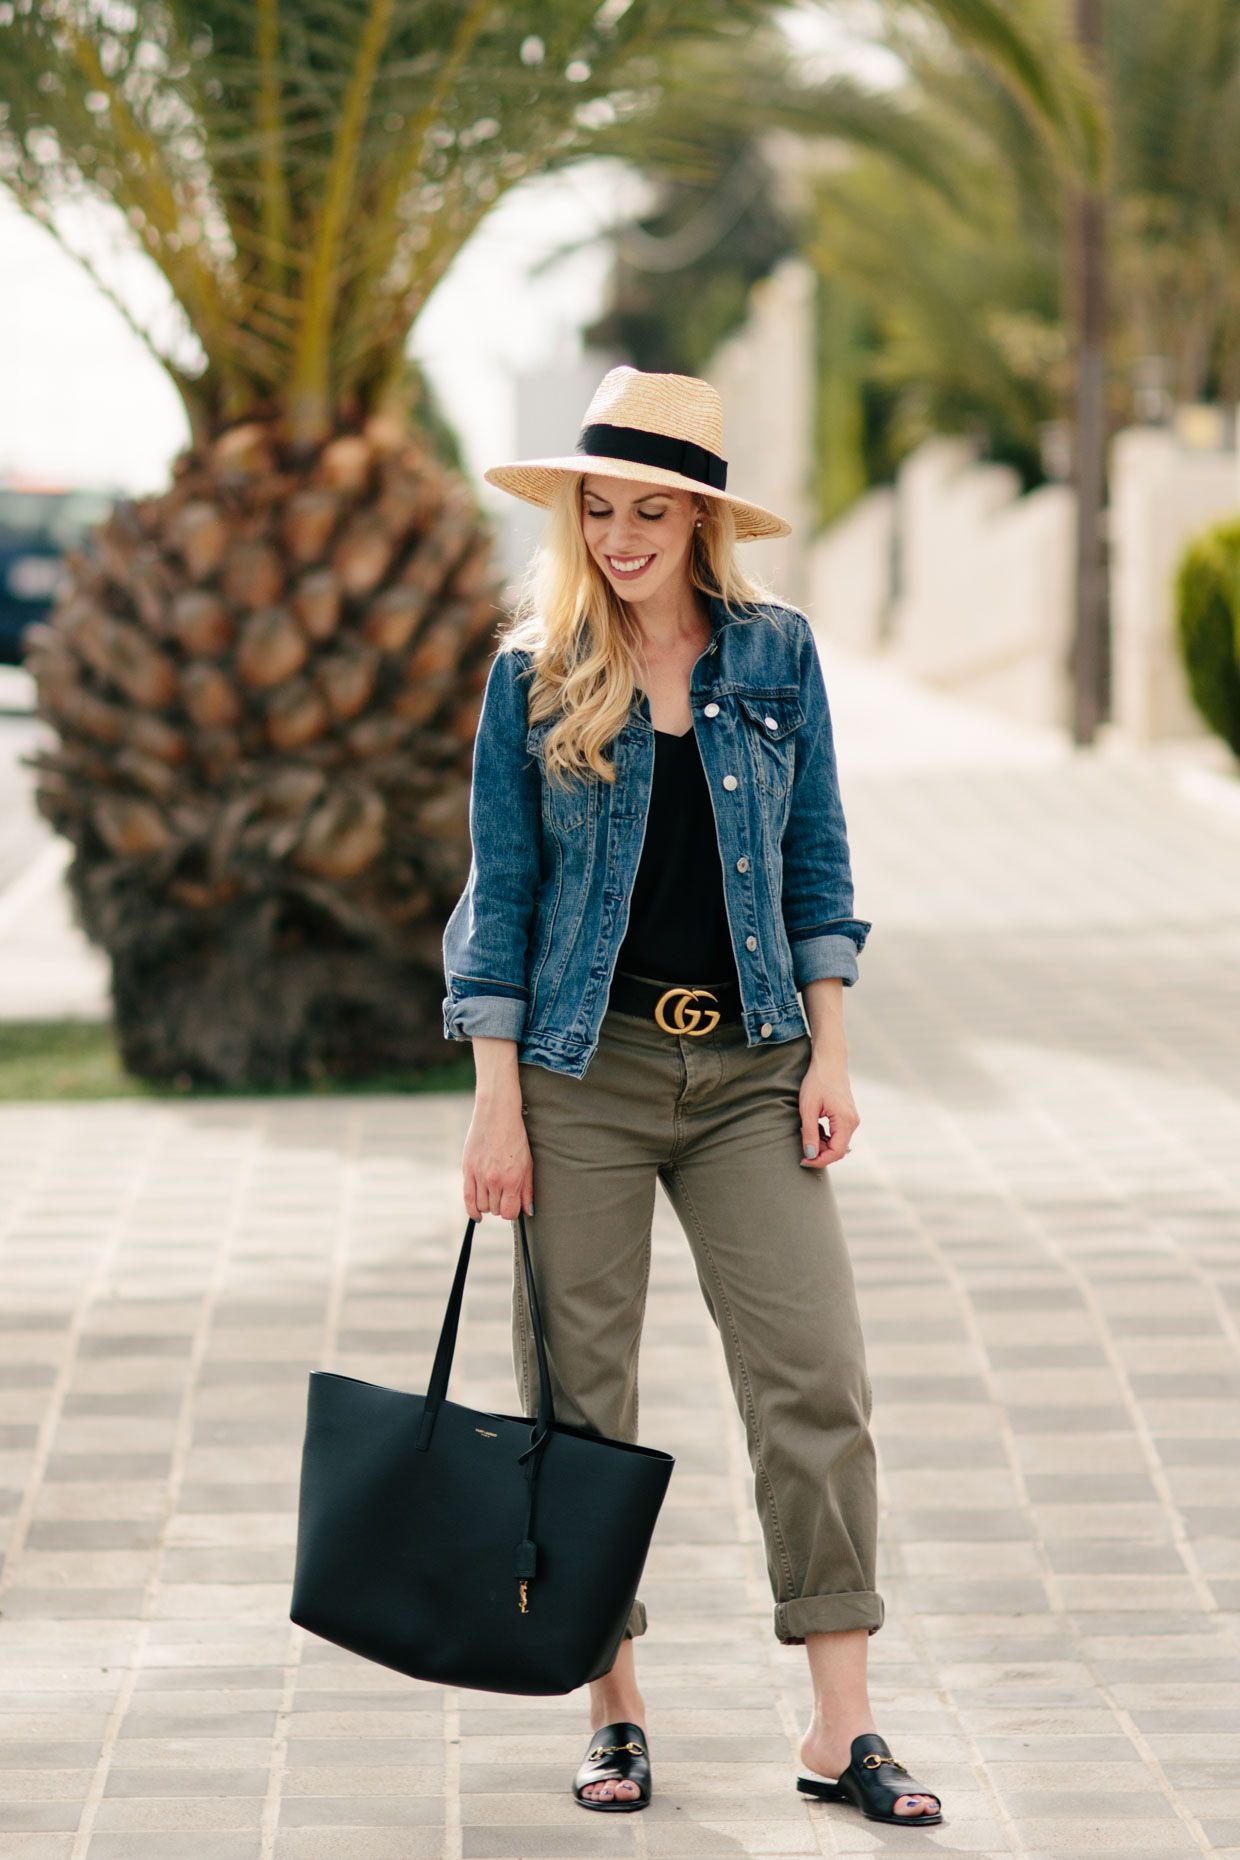 31a1782c1354c Summer Casual: J. Crew denim jacket with Gucci belt, chino pants and Gucci  slide sandals, Saint Laurent shopping tote, denim jacket with straw hat  summer ...